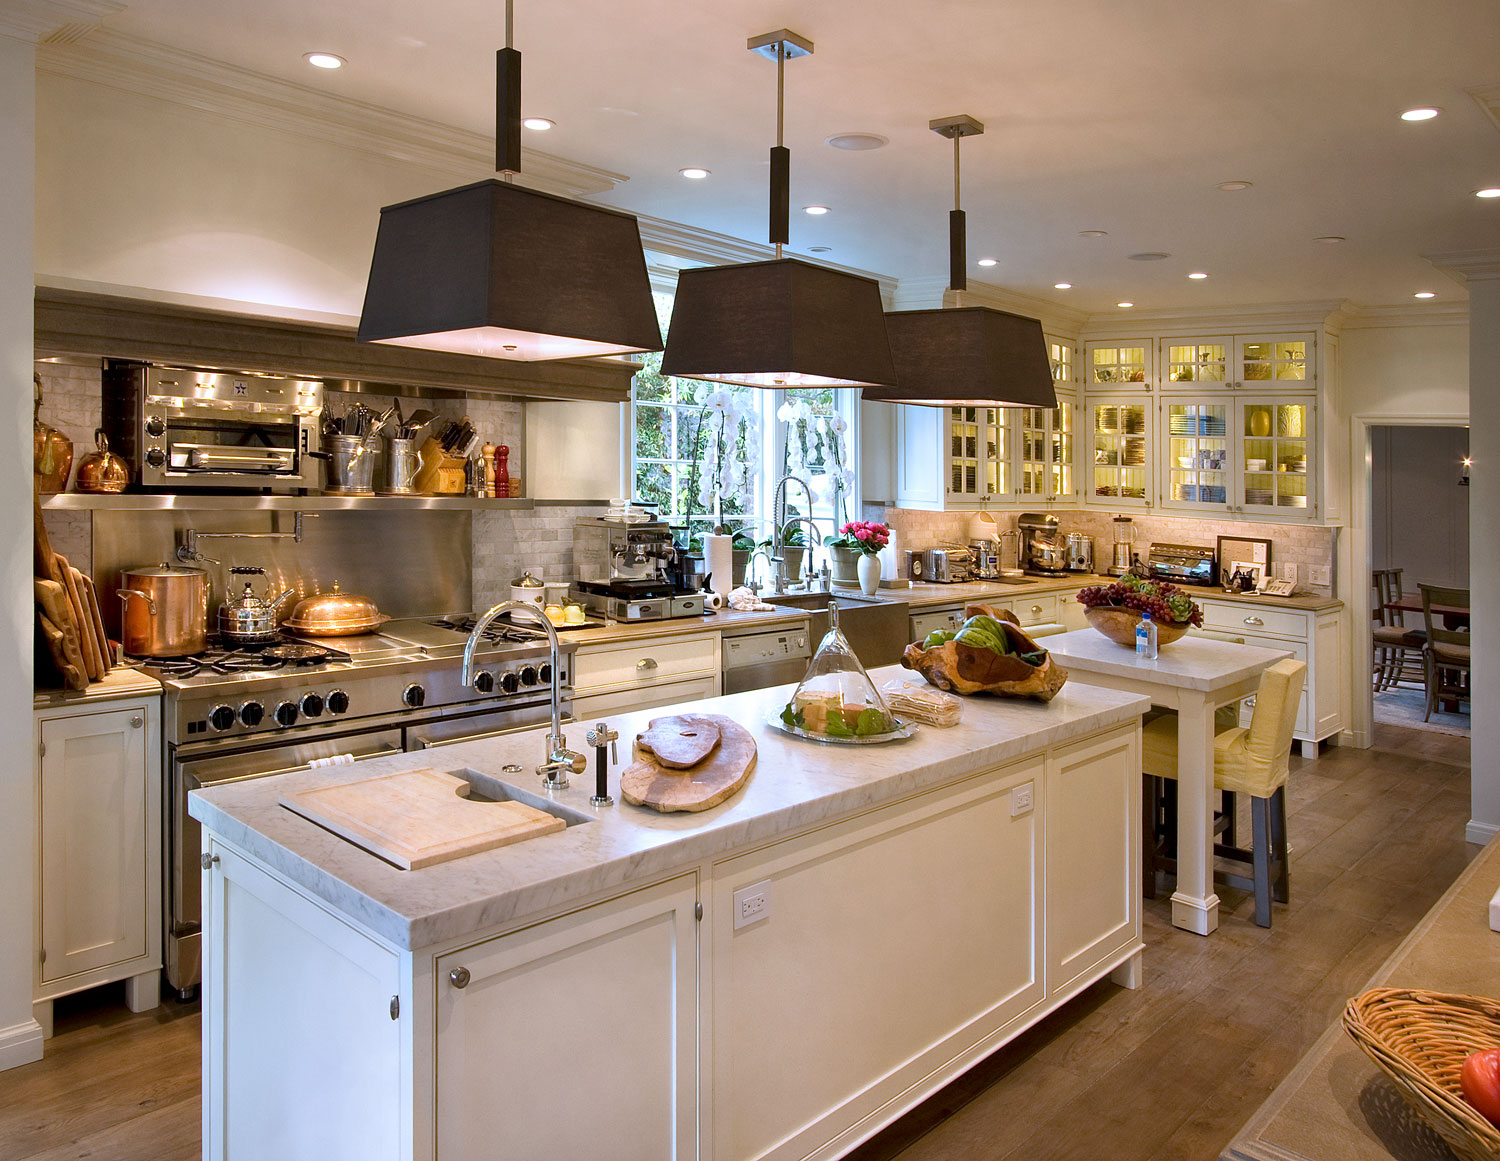 05-traditional-kitchen-marble-counters-stainless-steel-appliances-gary-drake-general-contractor.jpg